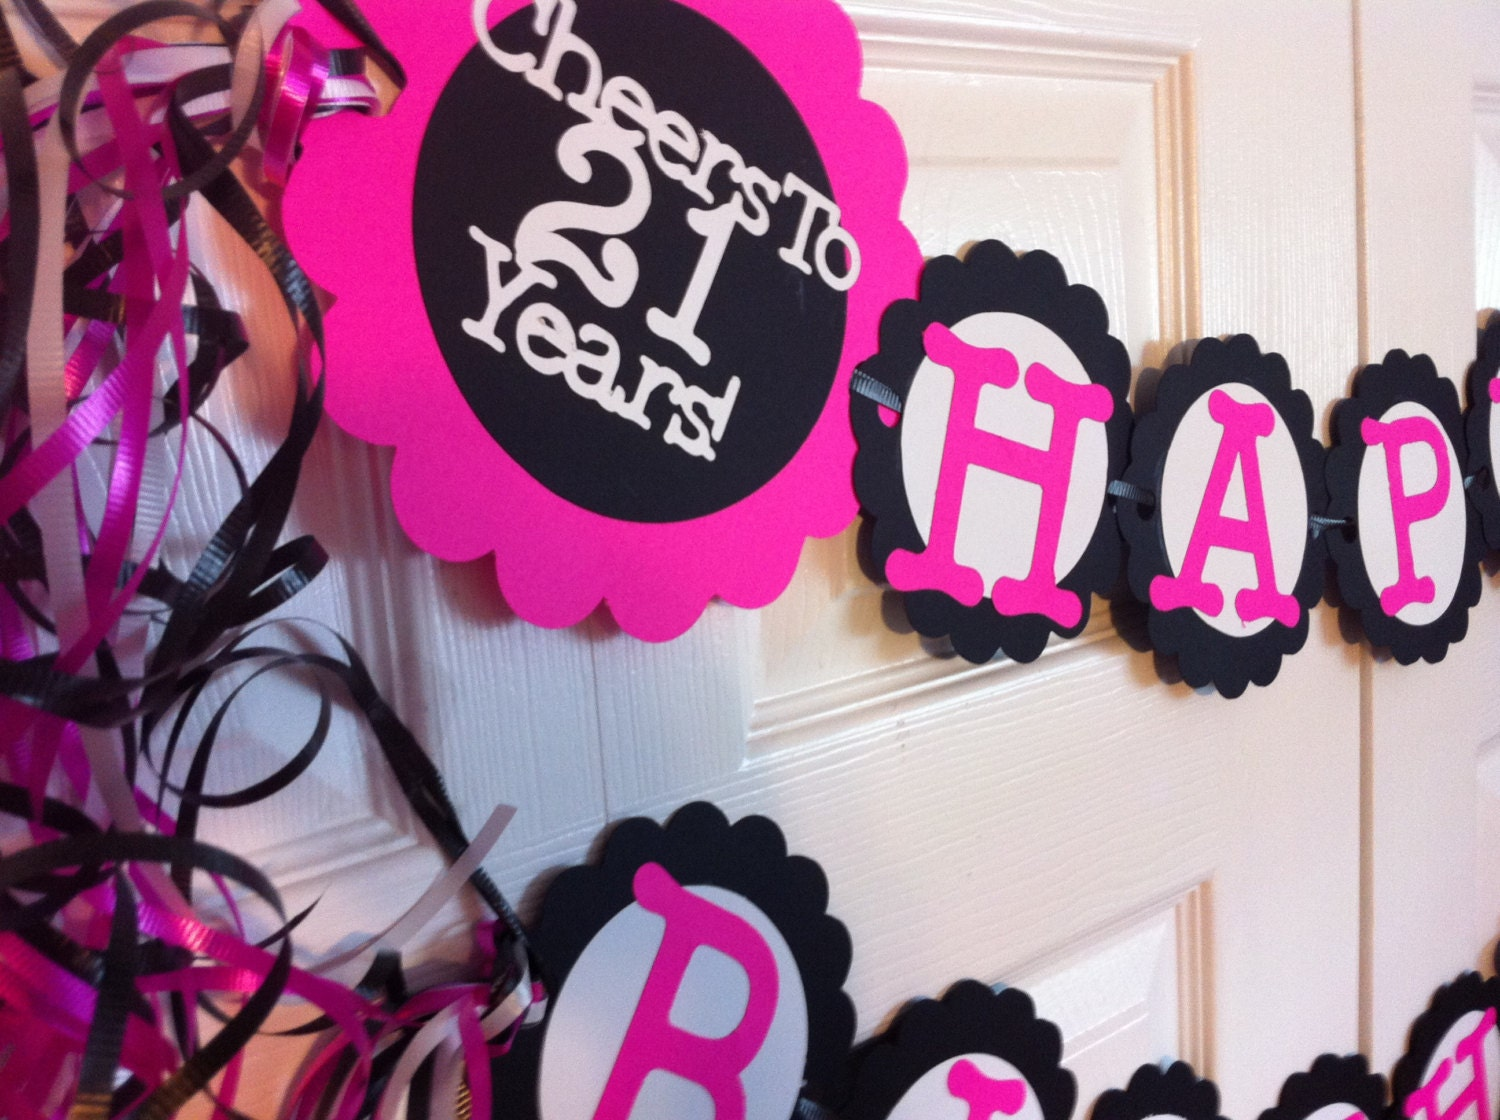 21st birthday party decorations personalization by frombeths for 21st bday decoration ideas